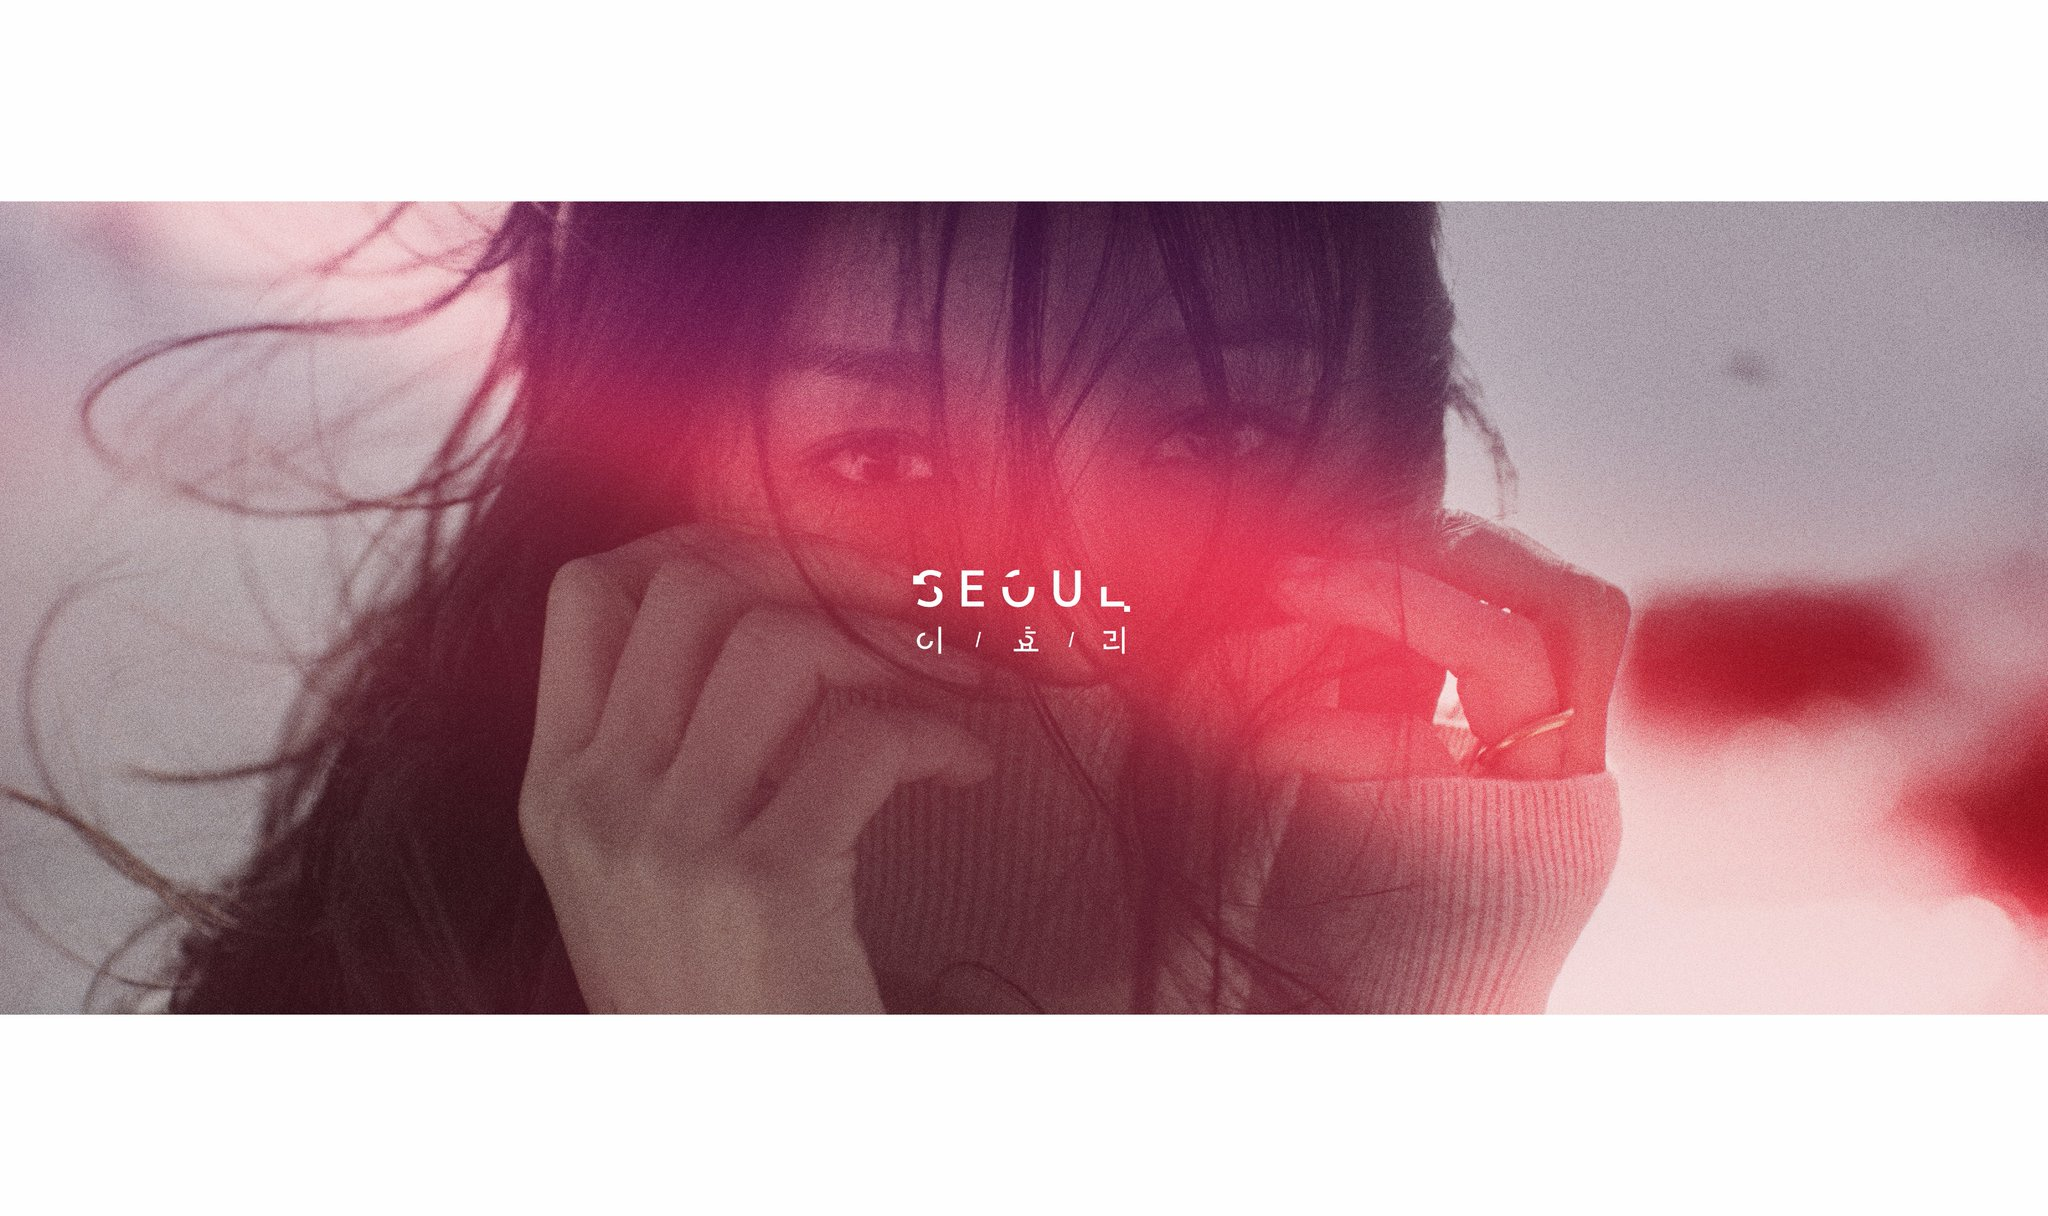 Lee Hyori Announces Pre-Release Track Seoul Ahead Of Comeback